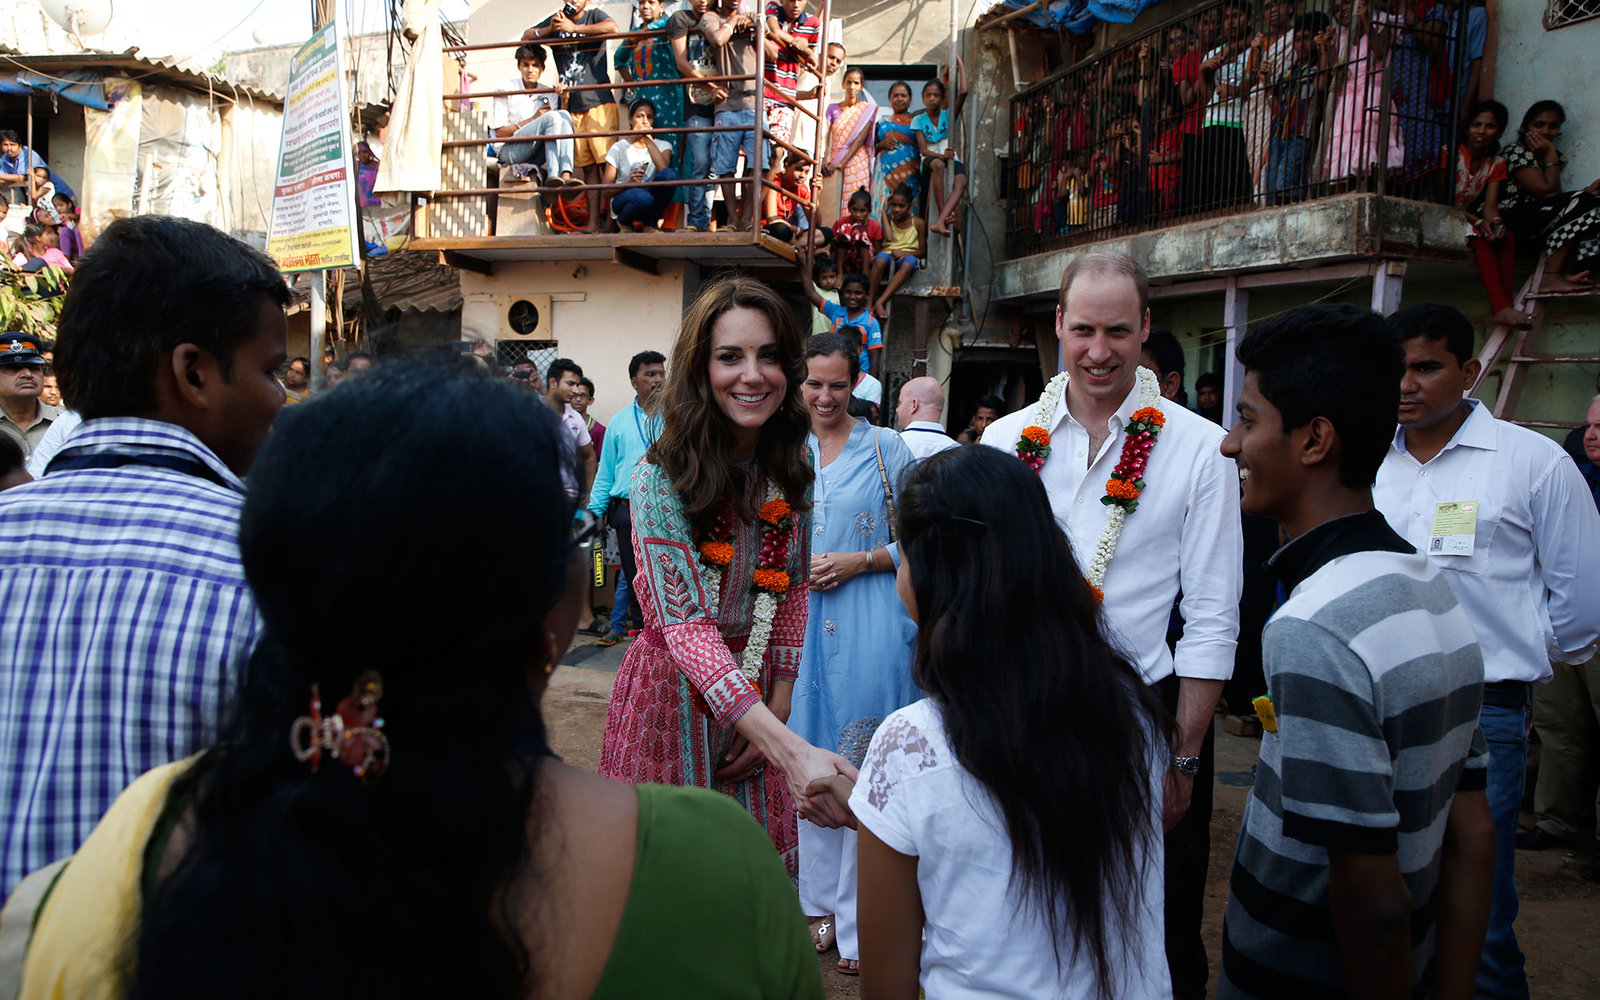 In Photos Prince William And Kate Middleton On Their Royal Tour Of